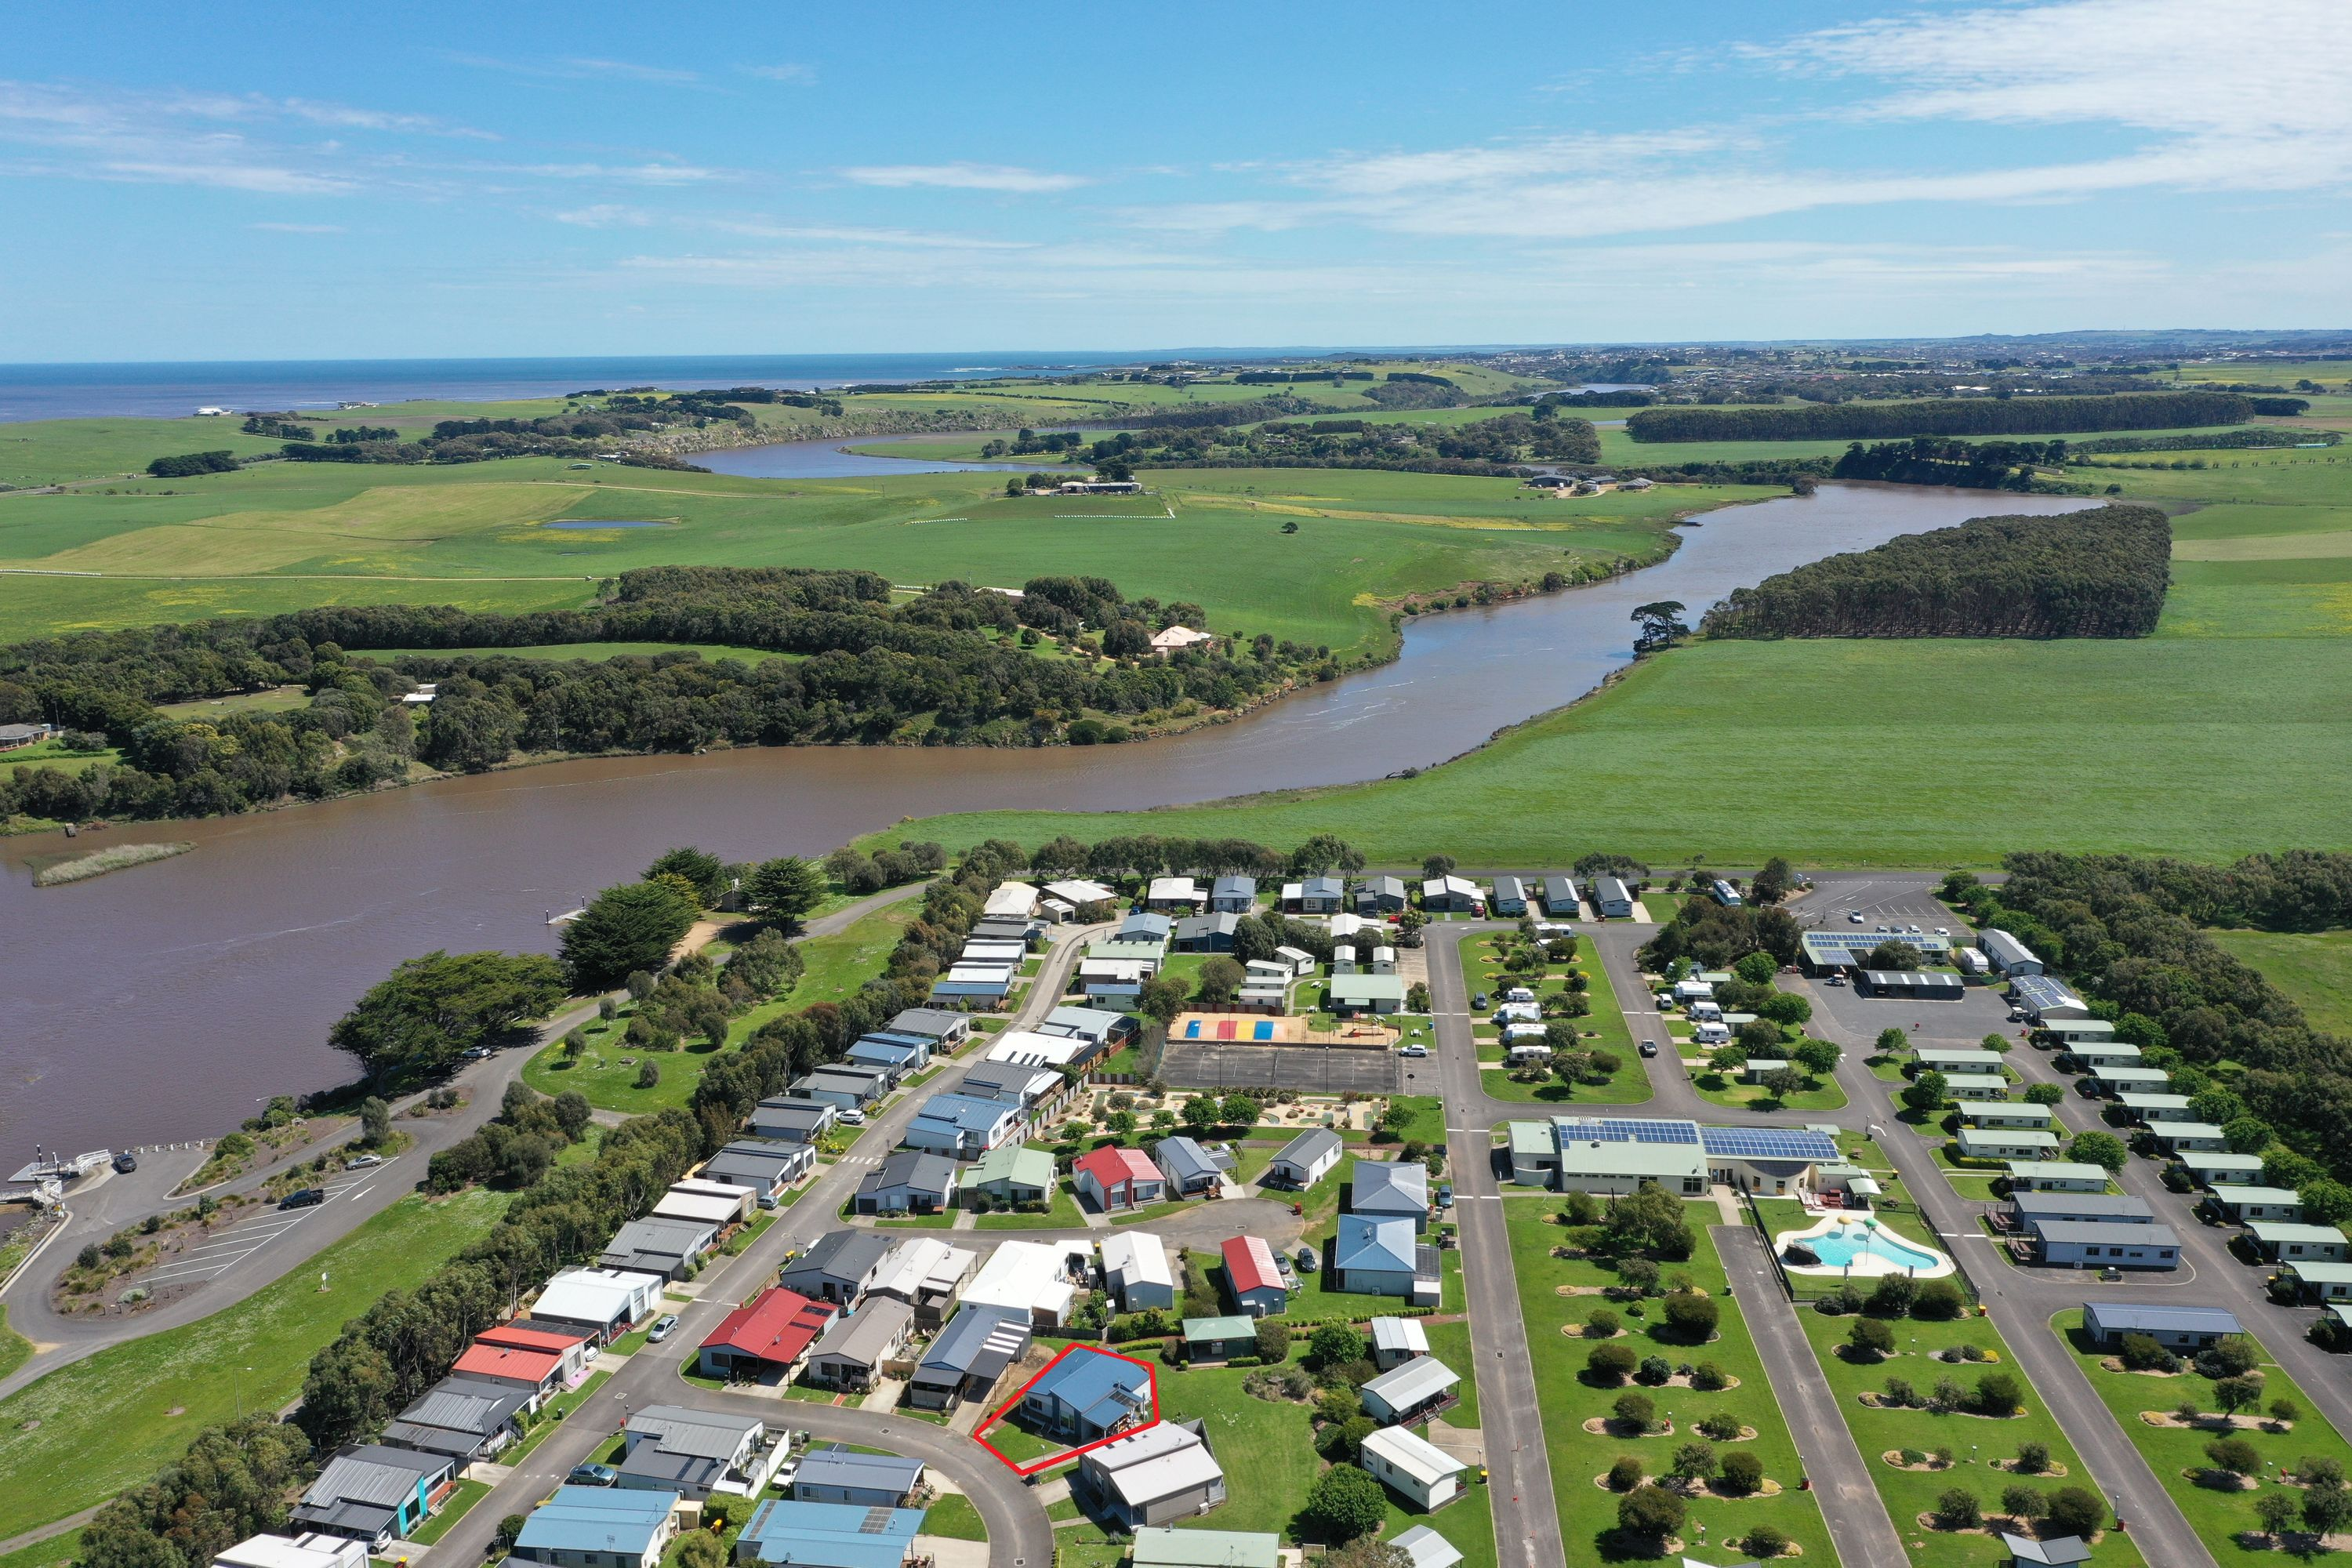 116/125 Hopkins River Caravan Park, Warrnambool, VIC 3280